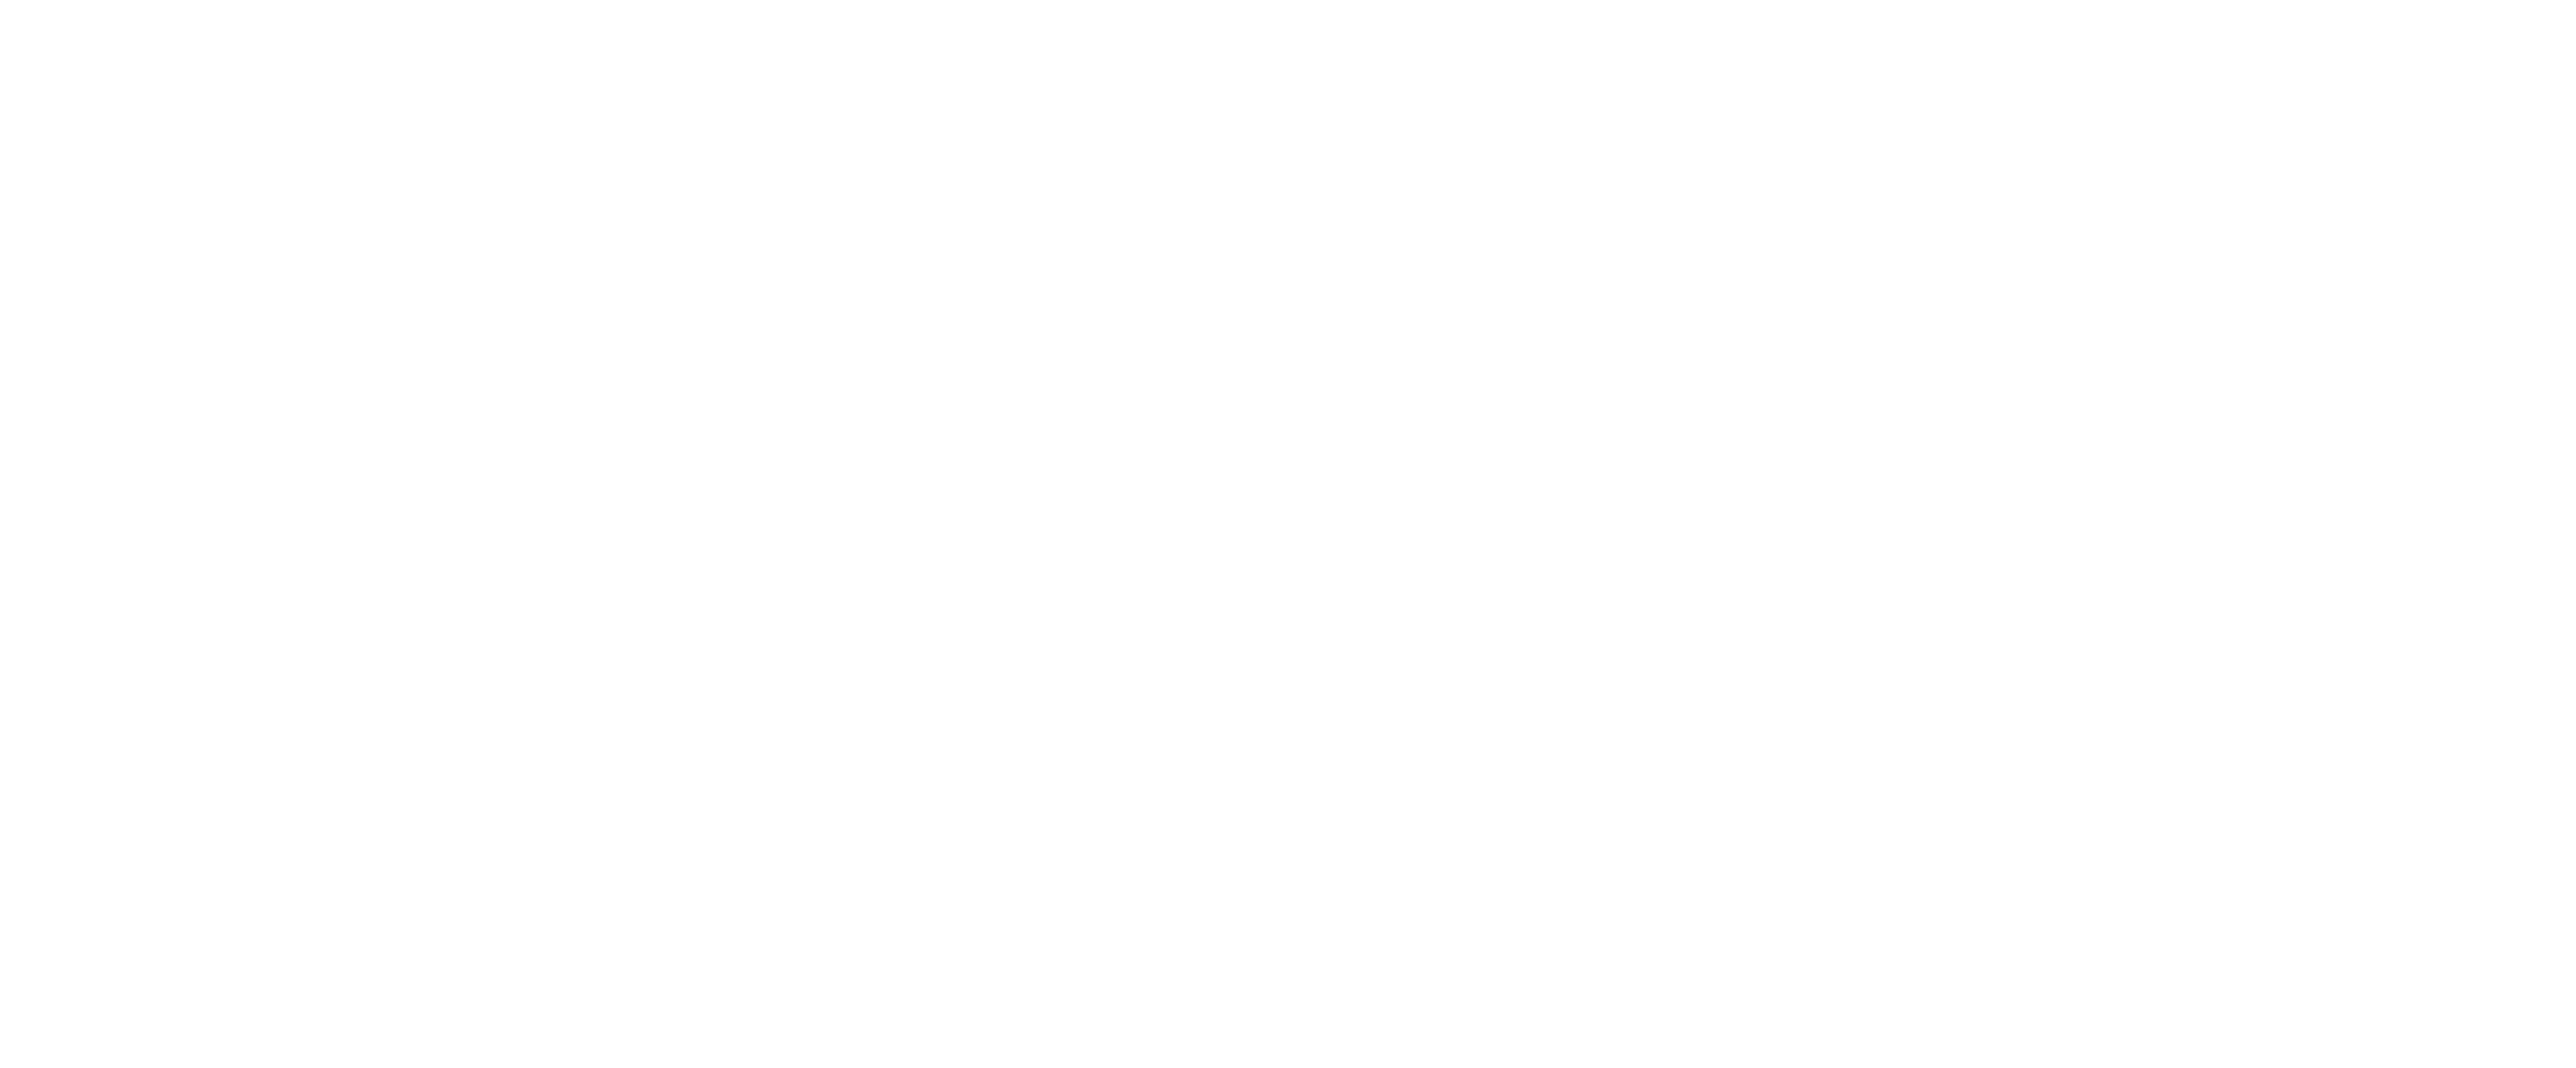 Fueling Passion in Your Career: The Road to Becoming a